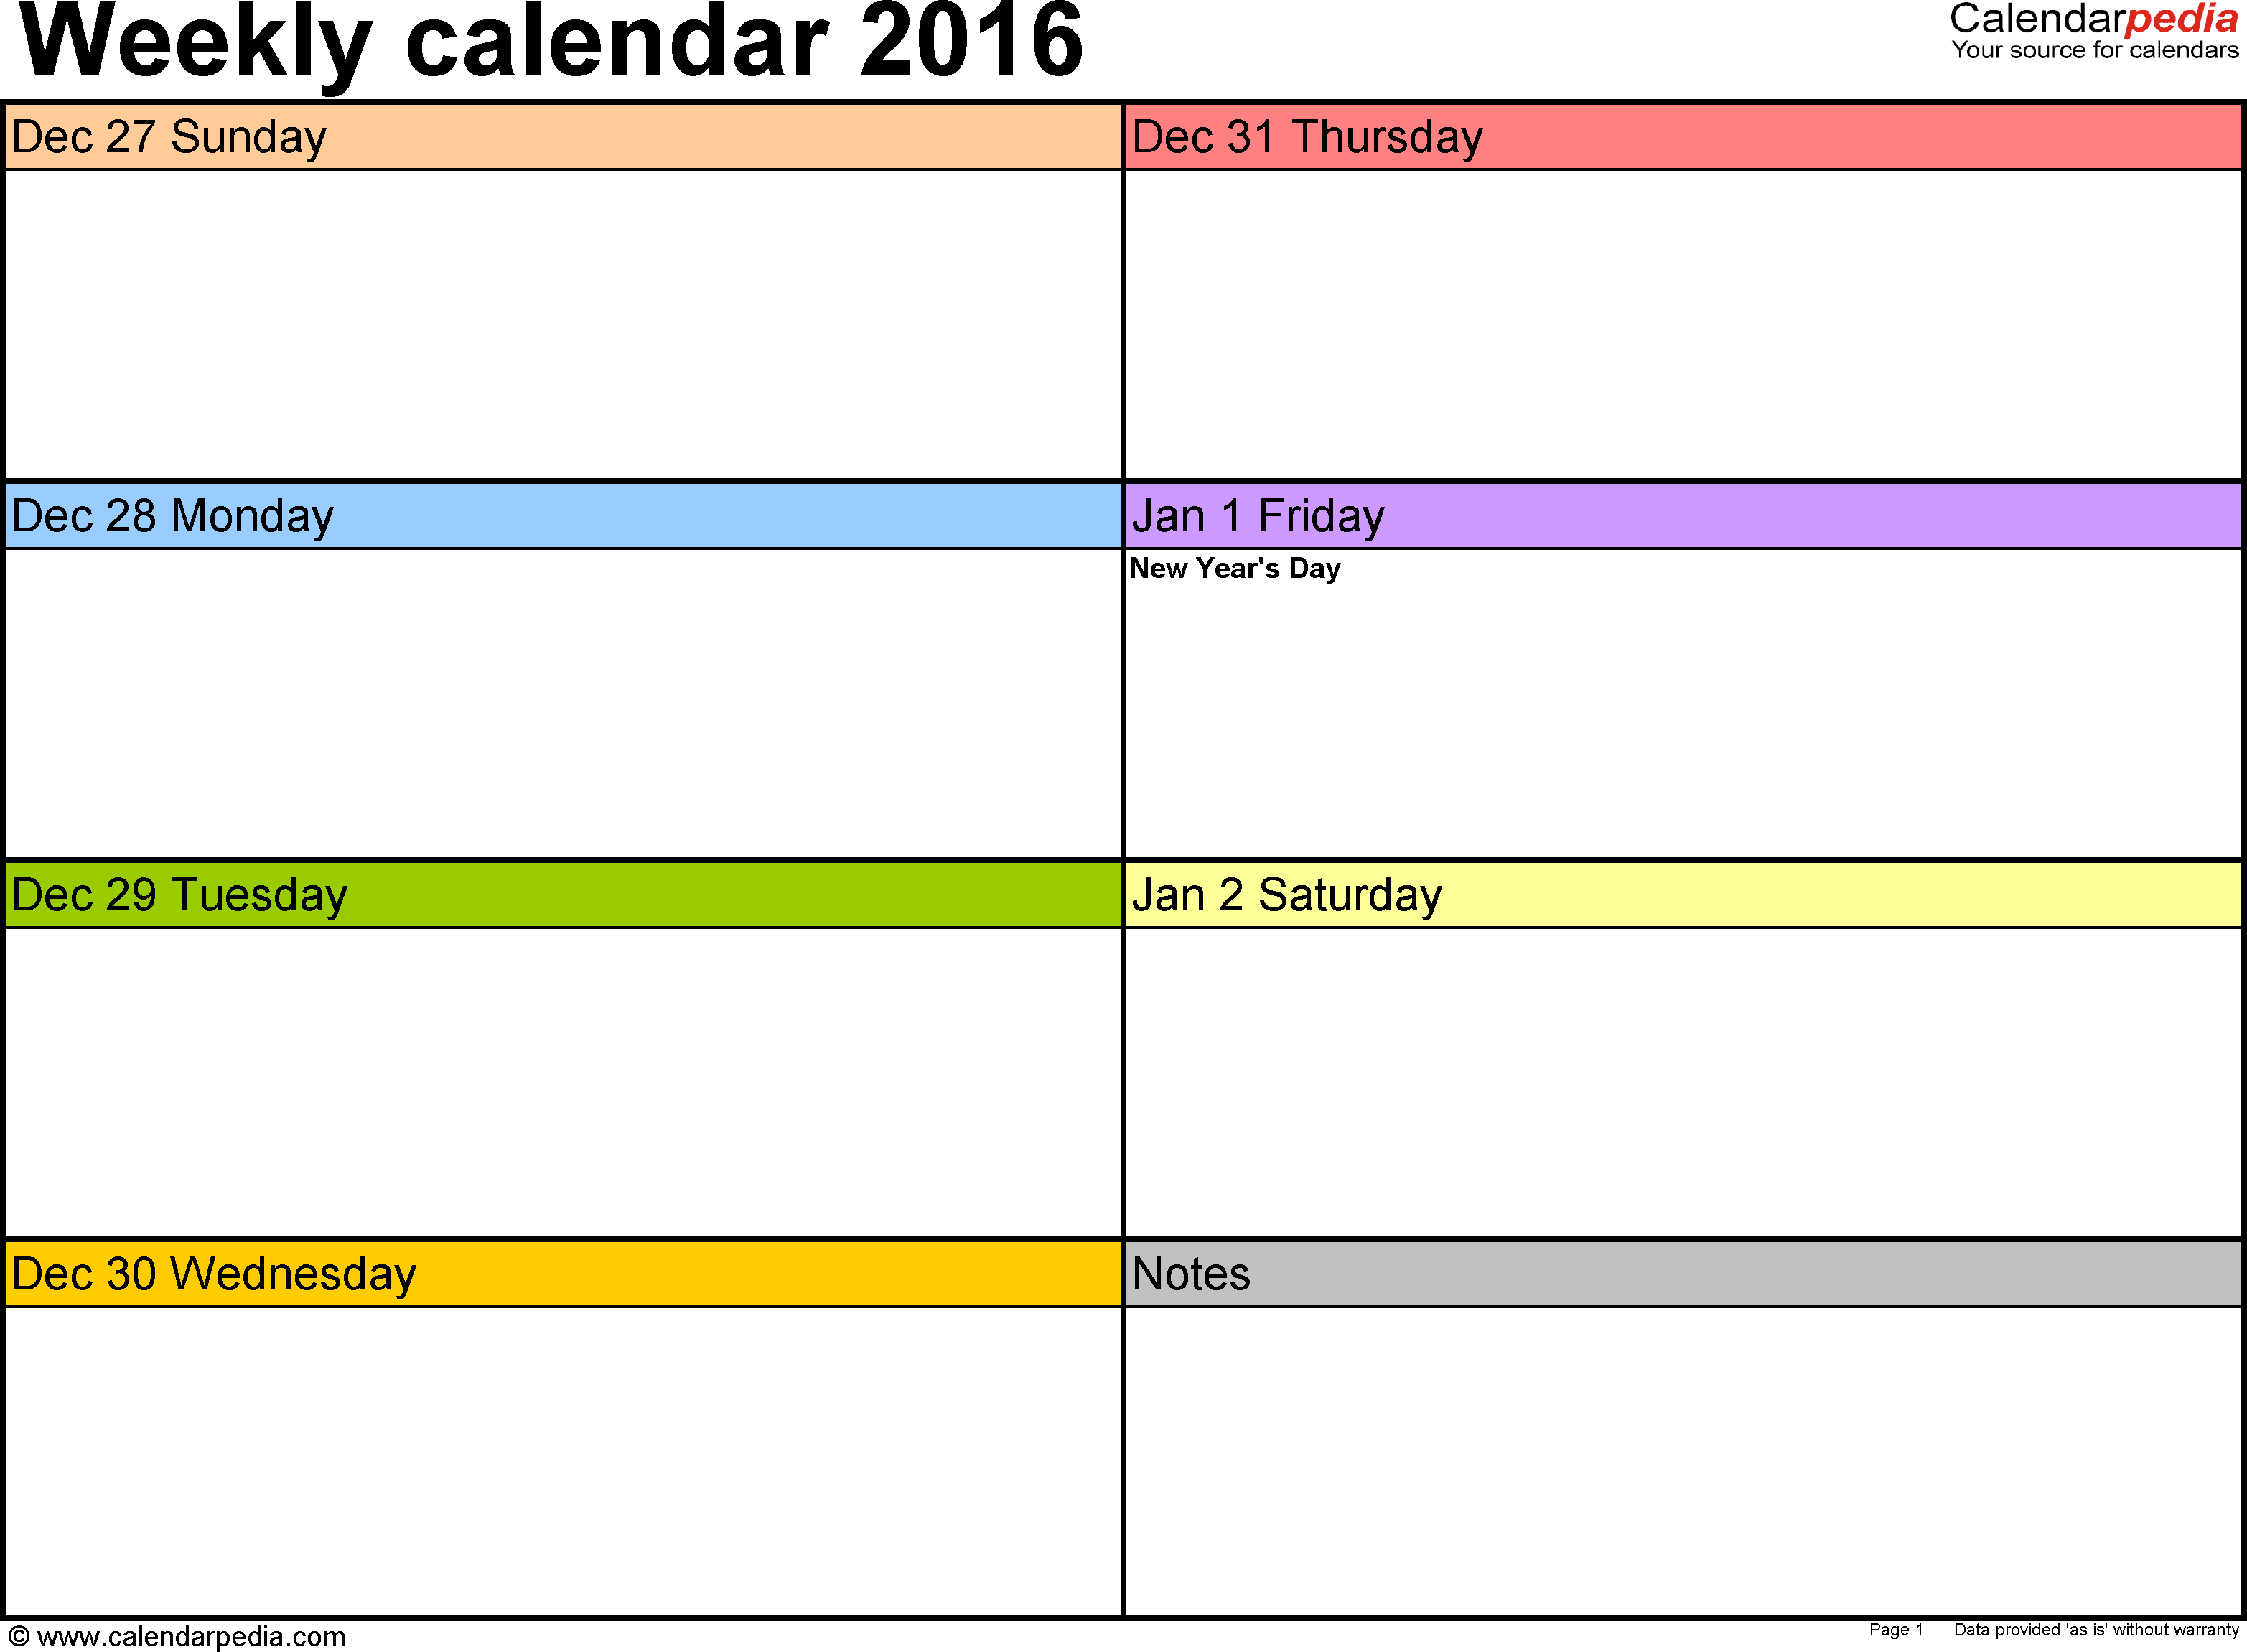 3 day calendar template - weekly calendar 2016 for excel 12 free printable templates